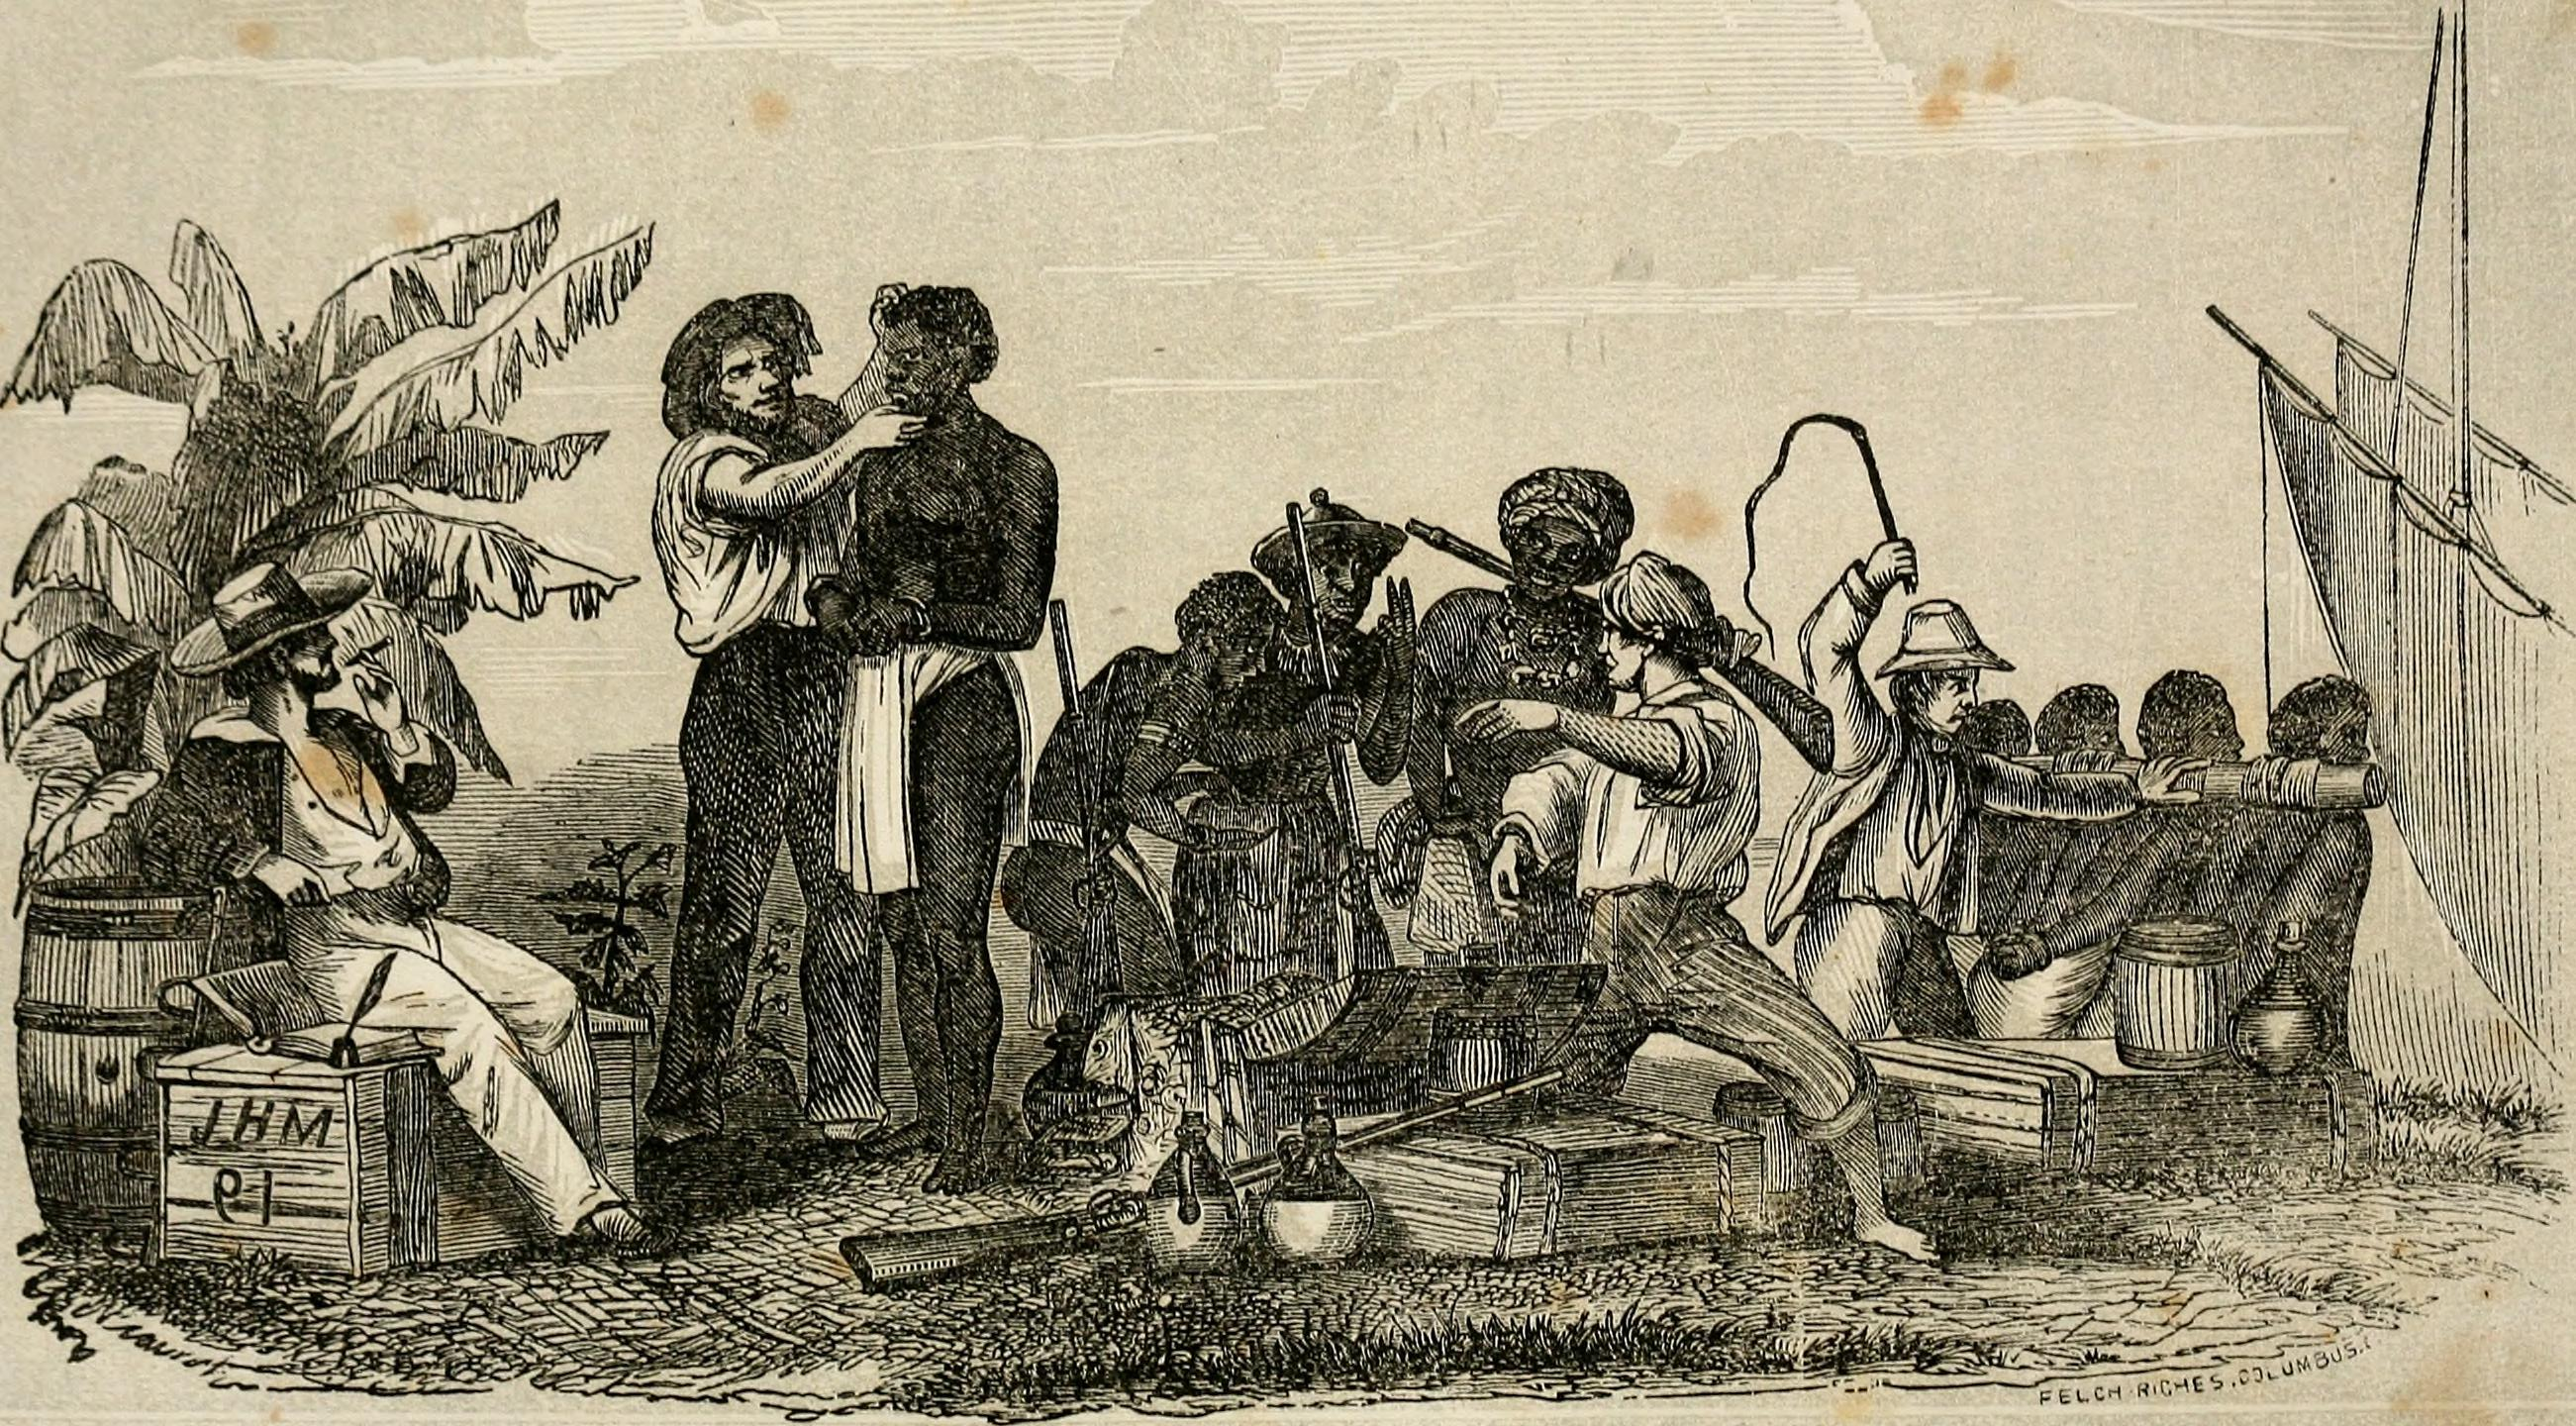 a look at the history of the cruel institution of slavery To examine lincoln's attitudes on slavery and race opens a window for us to look at his wealth on the institution of slavery american studies journal:.